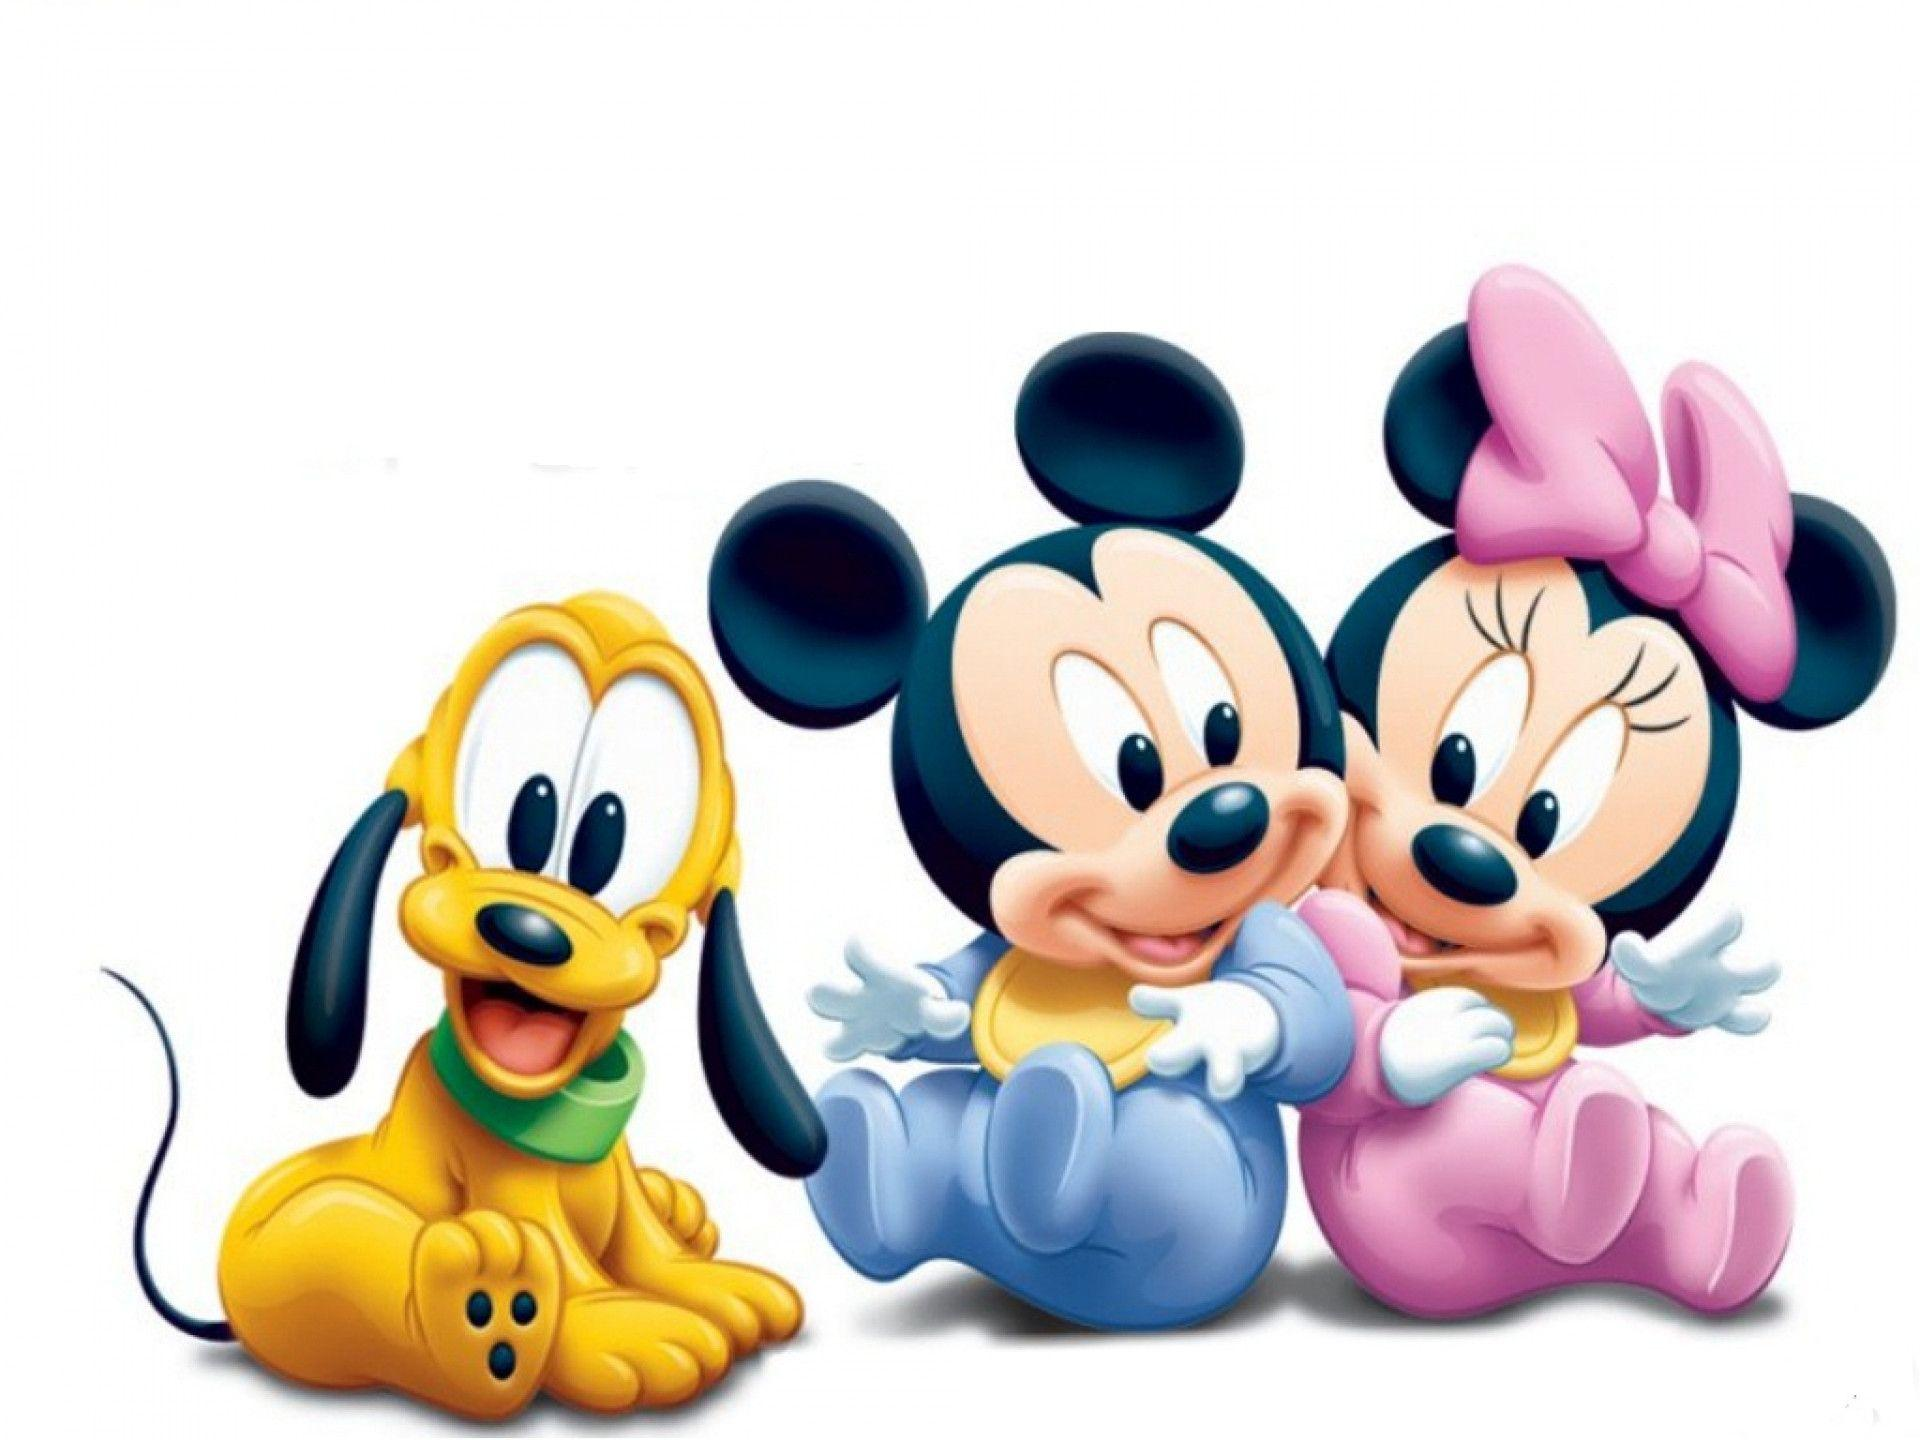 Baby Mickey Mouse HD Image 07593